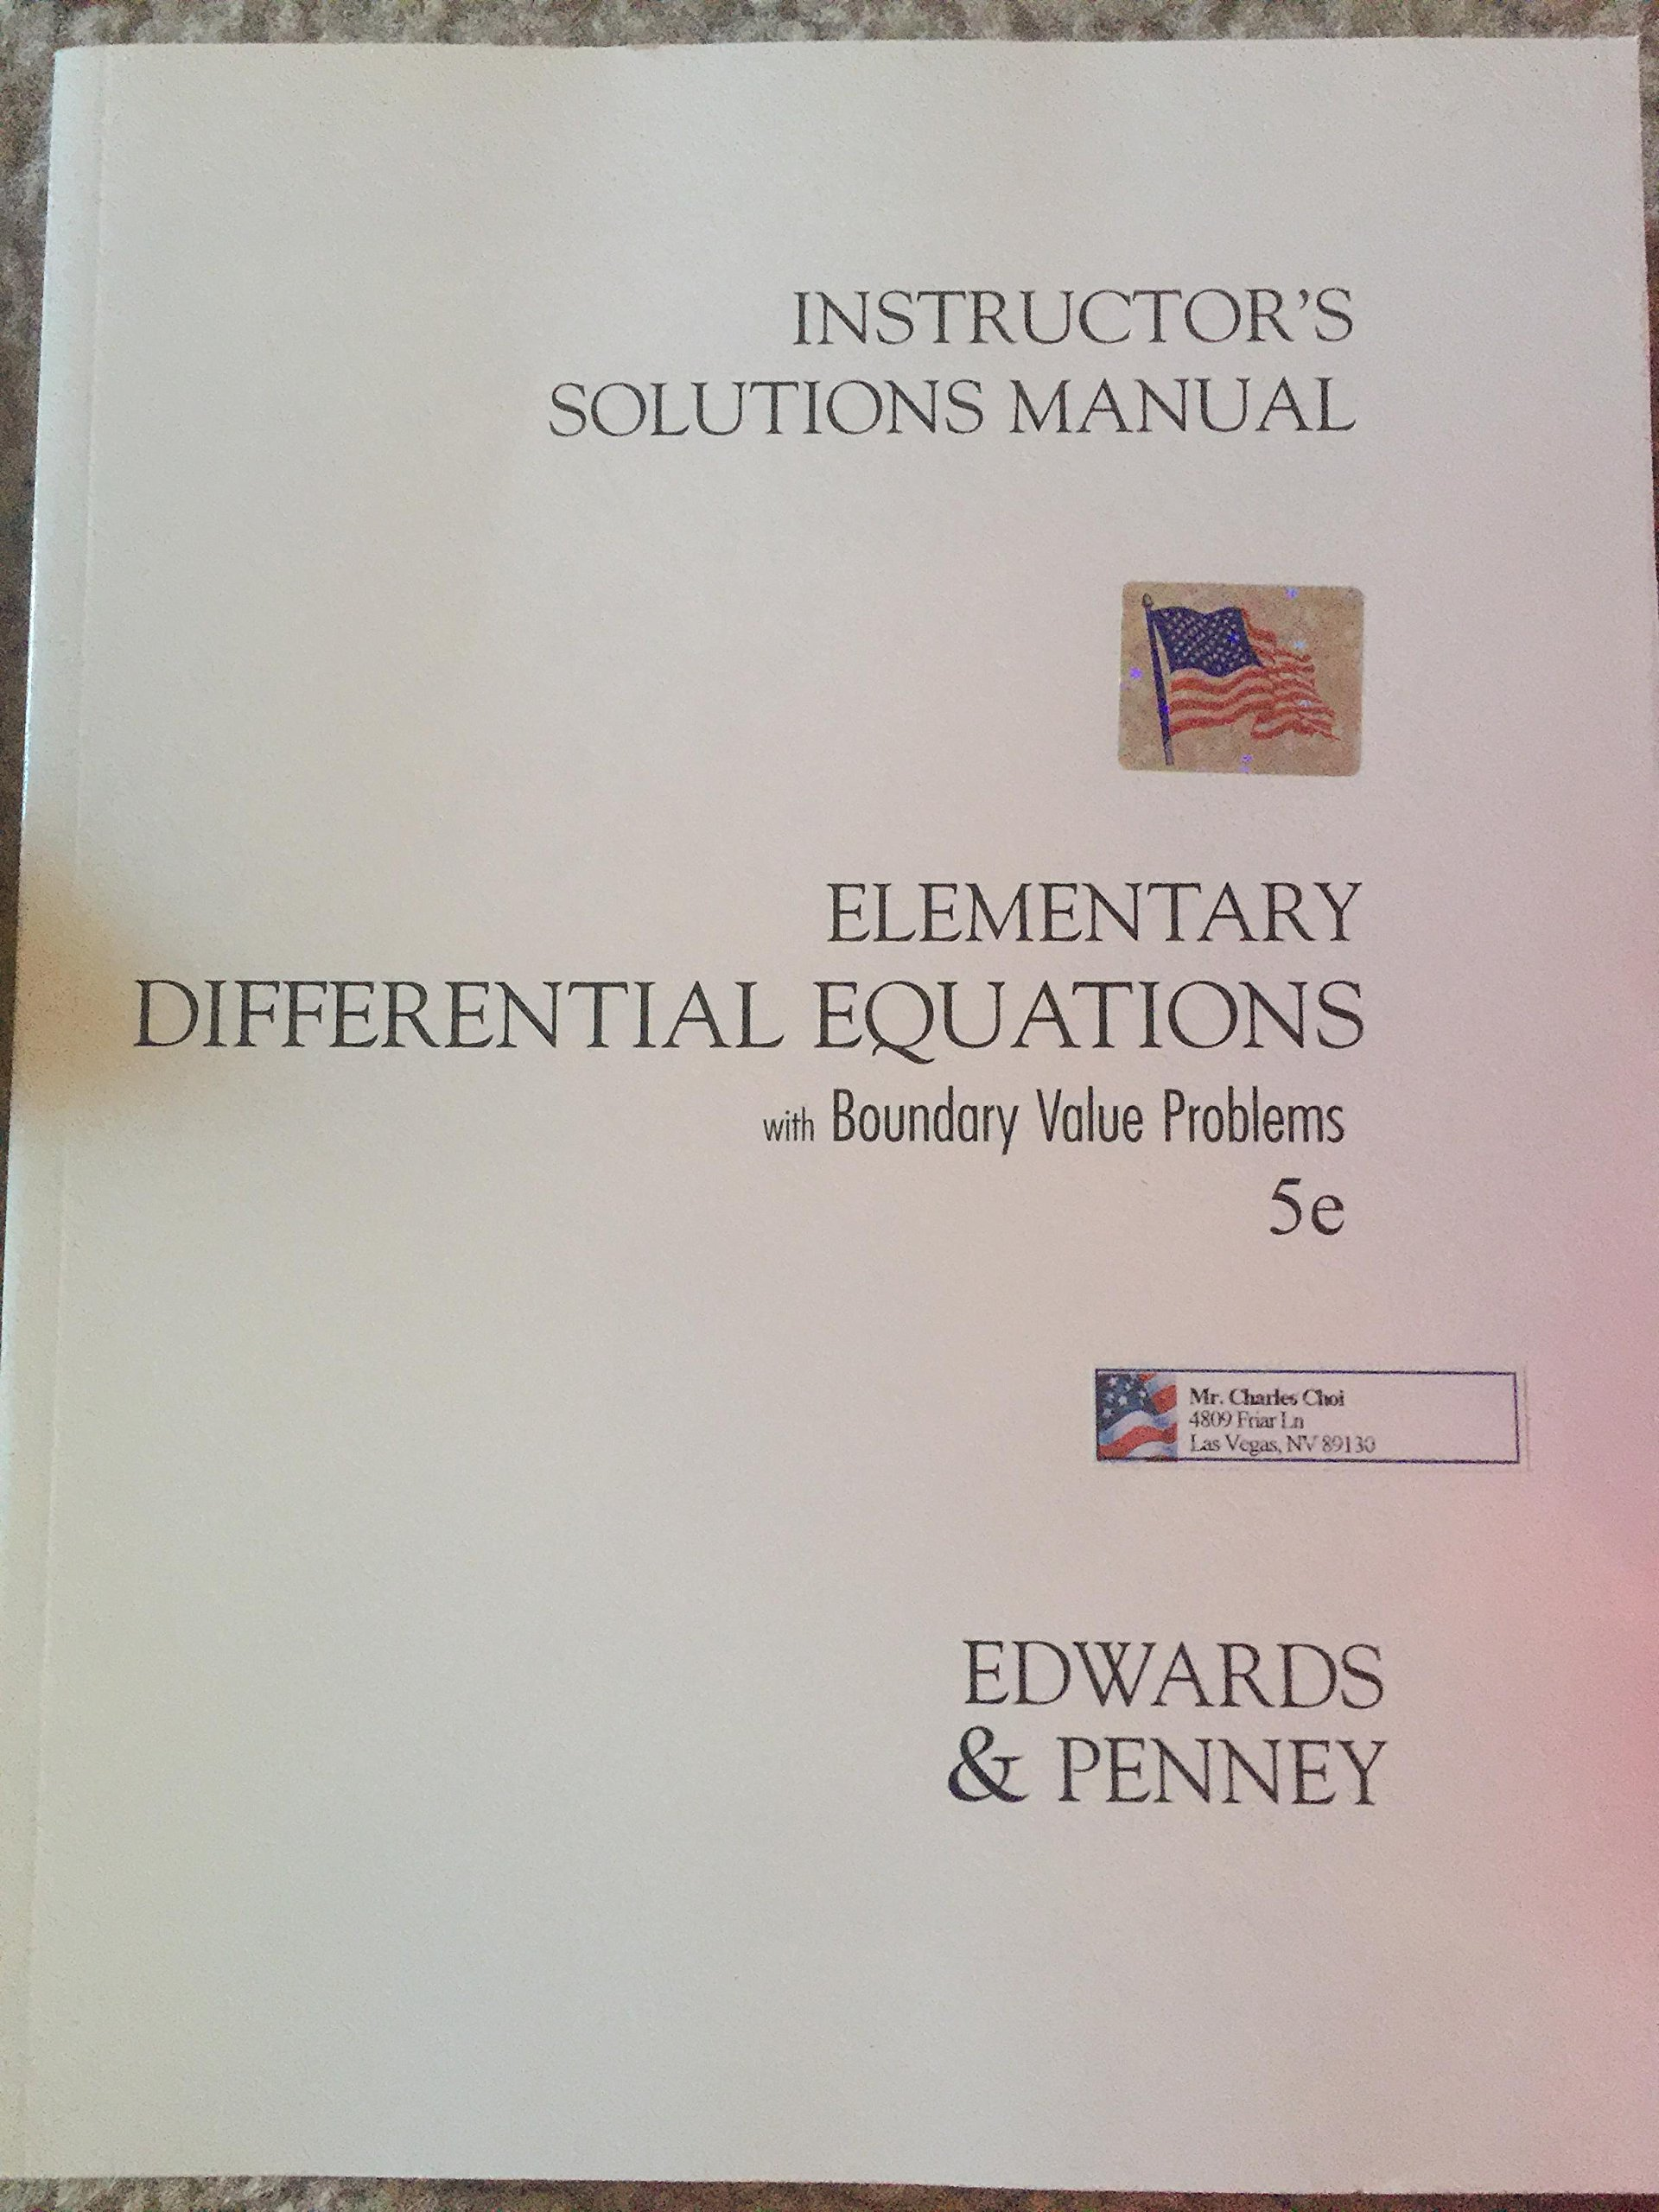 Instructor's Solutions Manual ELEMENTARY DIFFERENTIAL EQUATIONS with  BOUNDARY VALUE PROBLEMS 5e EDWARDS & PENNY: C. Henry Edwards, David E. Penny:  ...